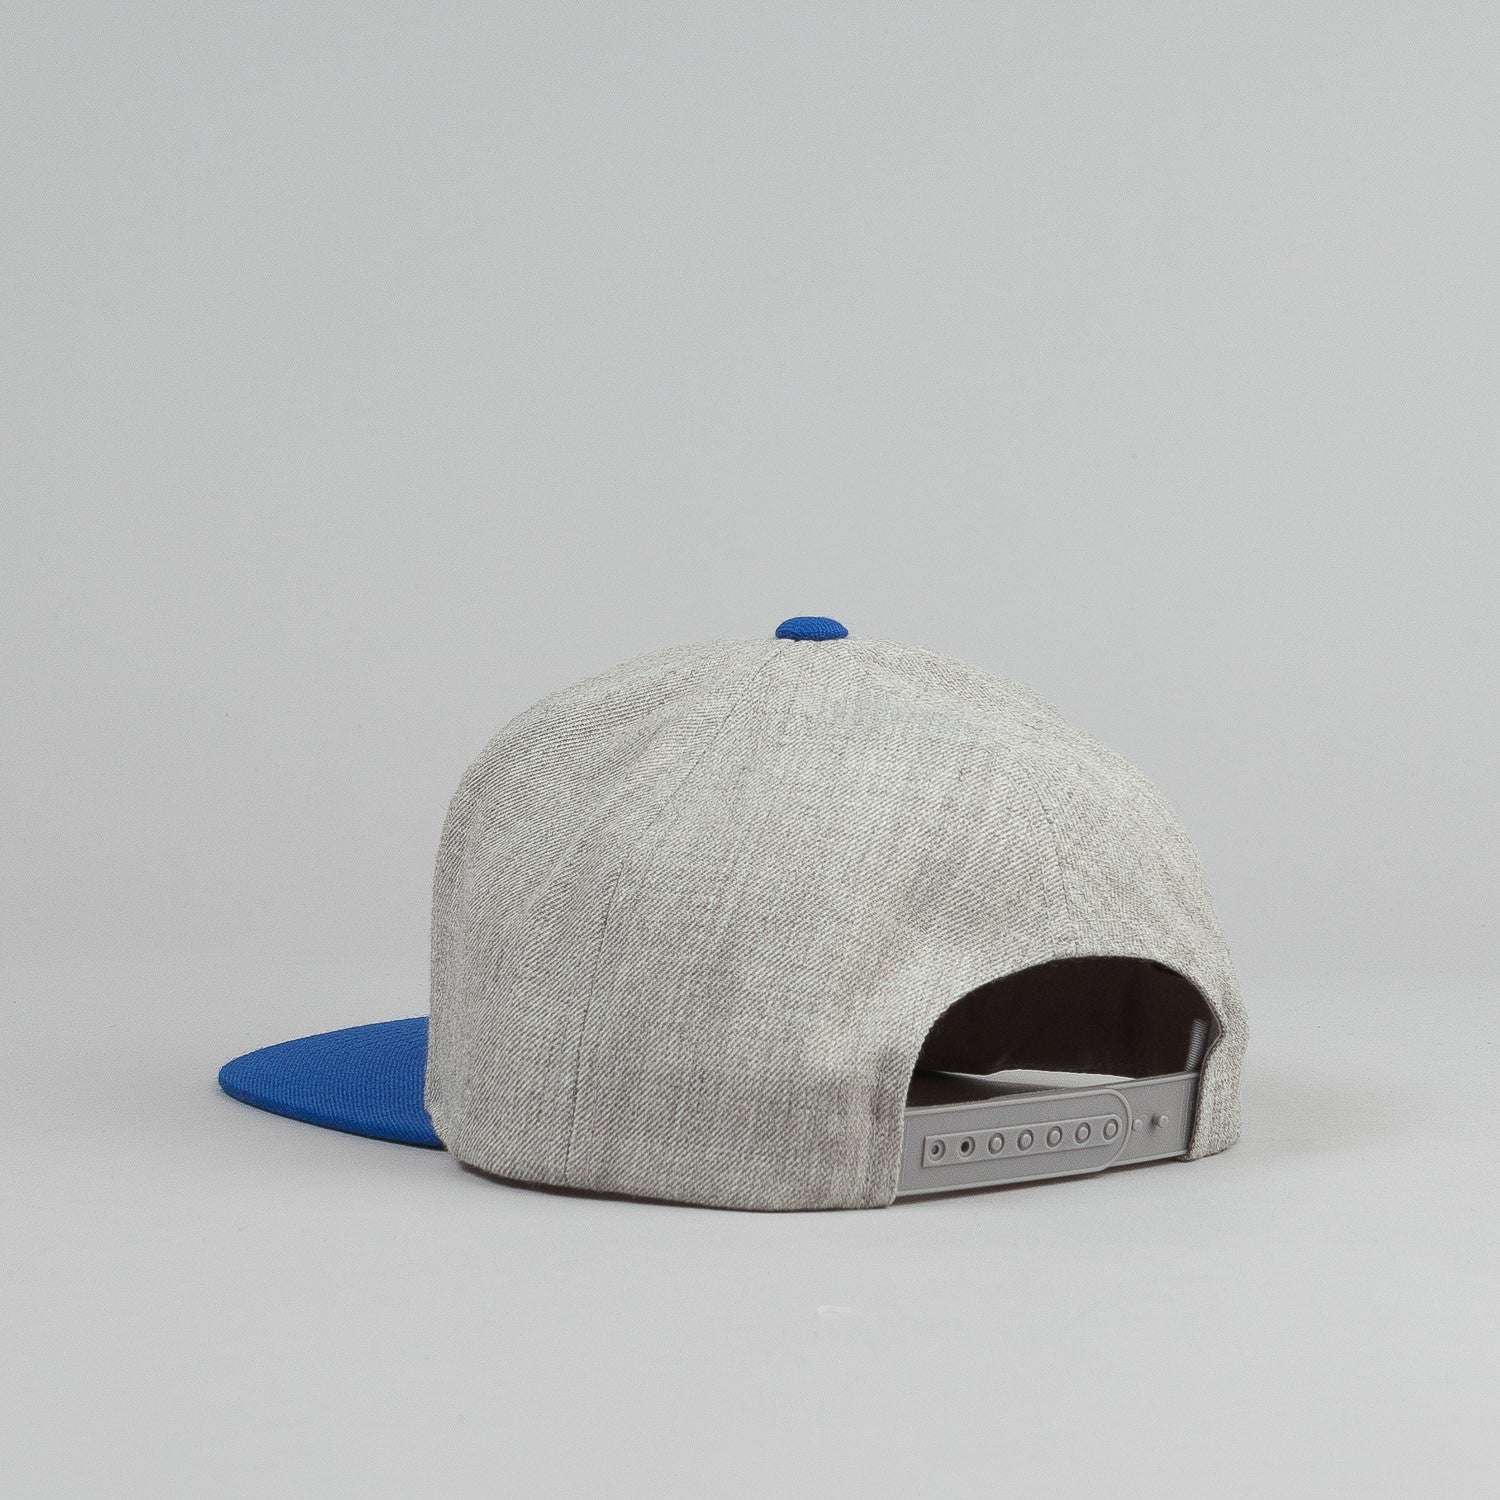 Brixton Rift Snapback Cap - Light Heather Grey / Royal